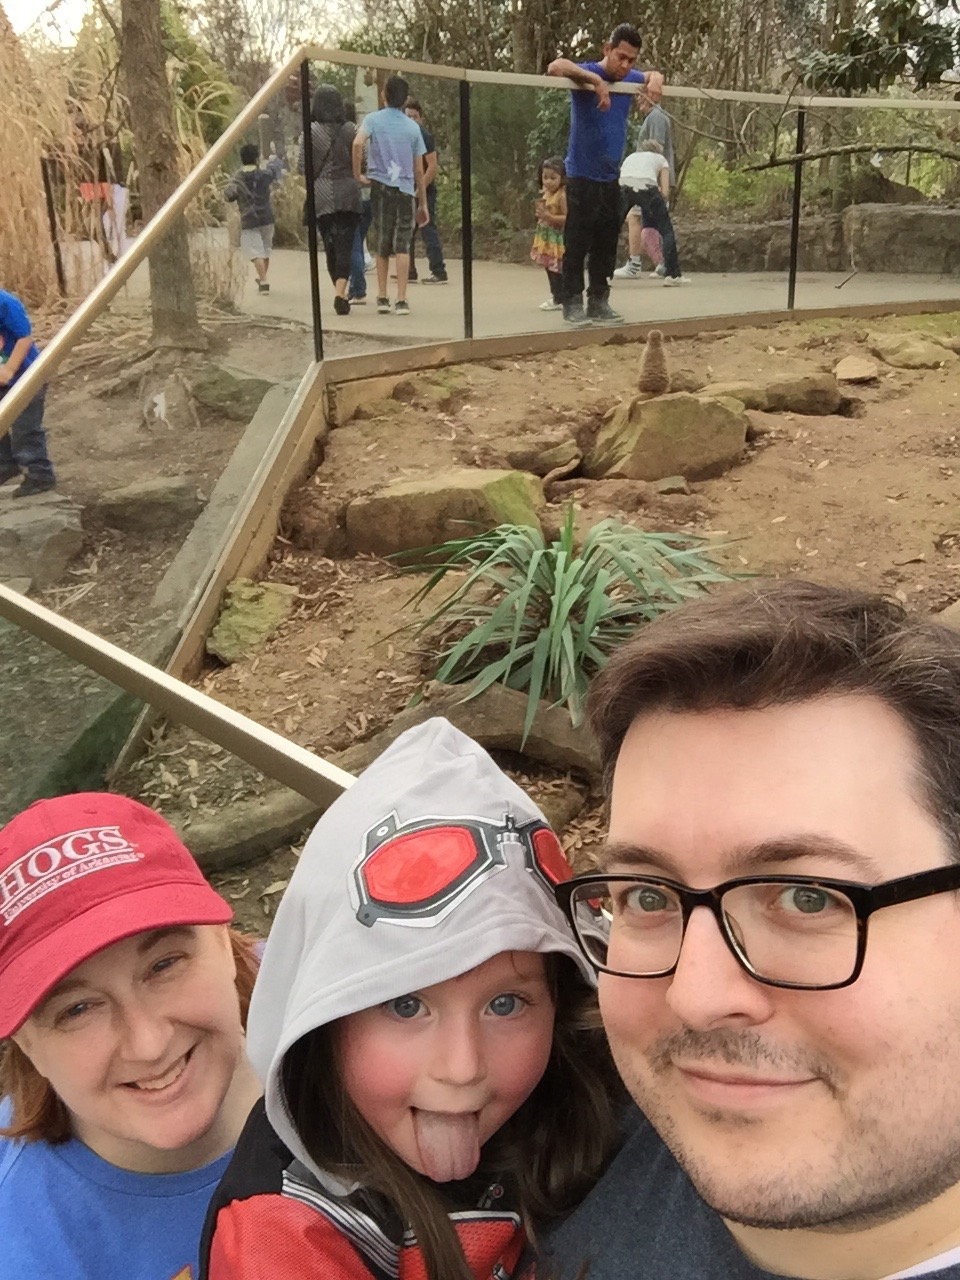 A selfie with our friend the meerkat on our latest trip to the Nashville Zoo